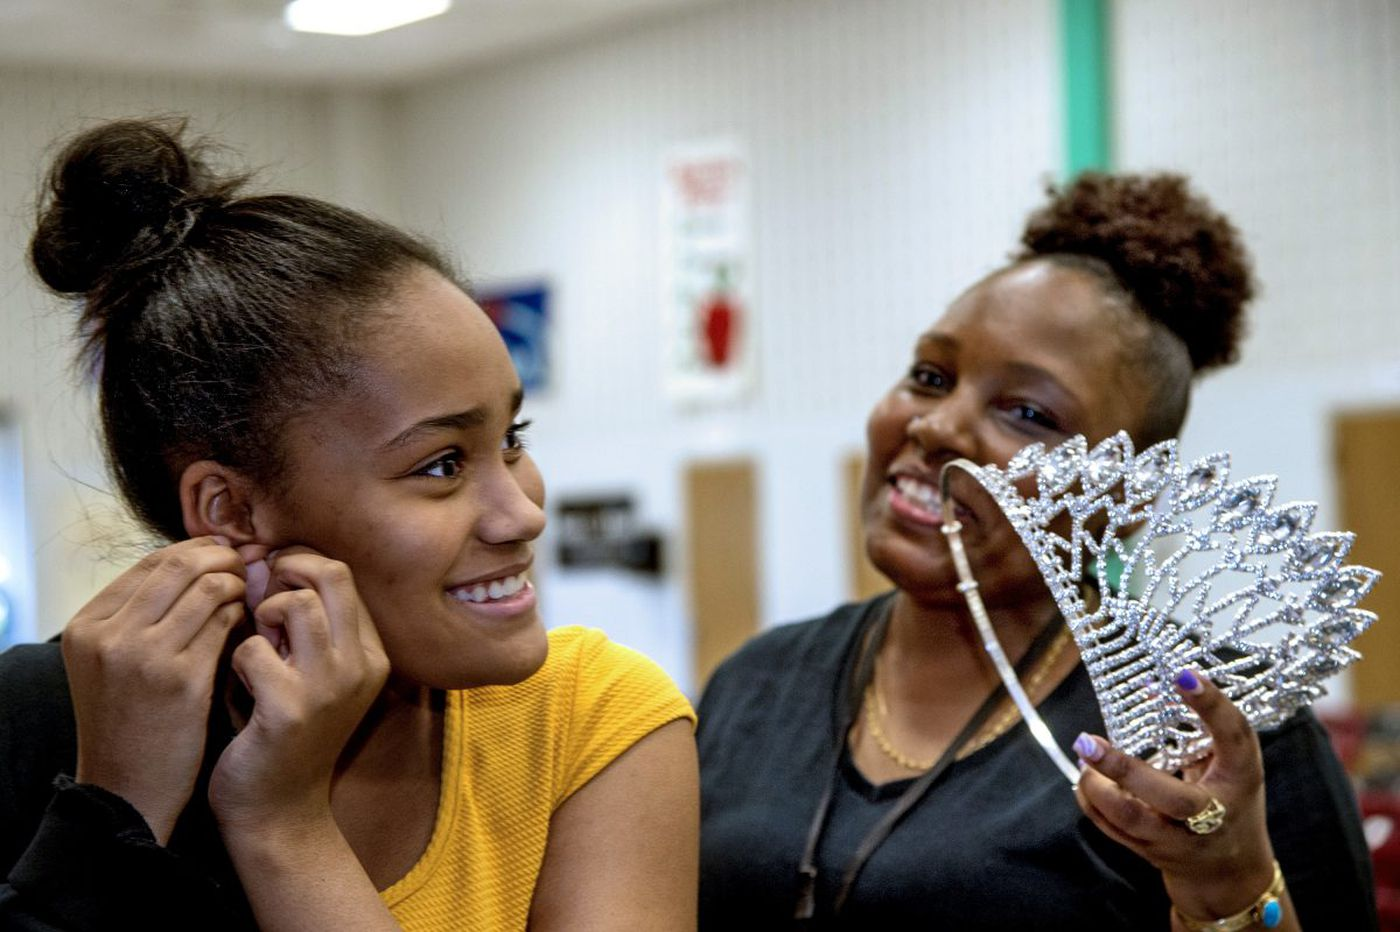 This Bucks County teen isn't letting sickle cell stop her pageant dreams